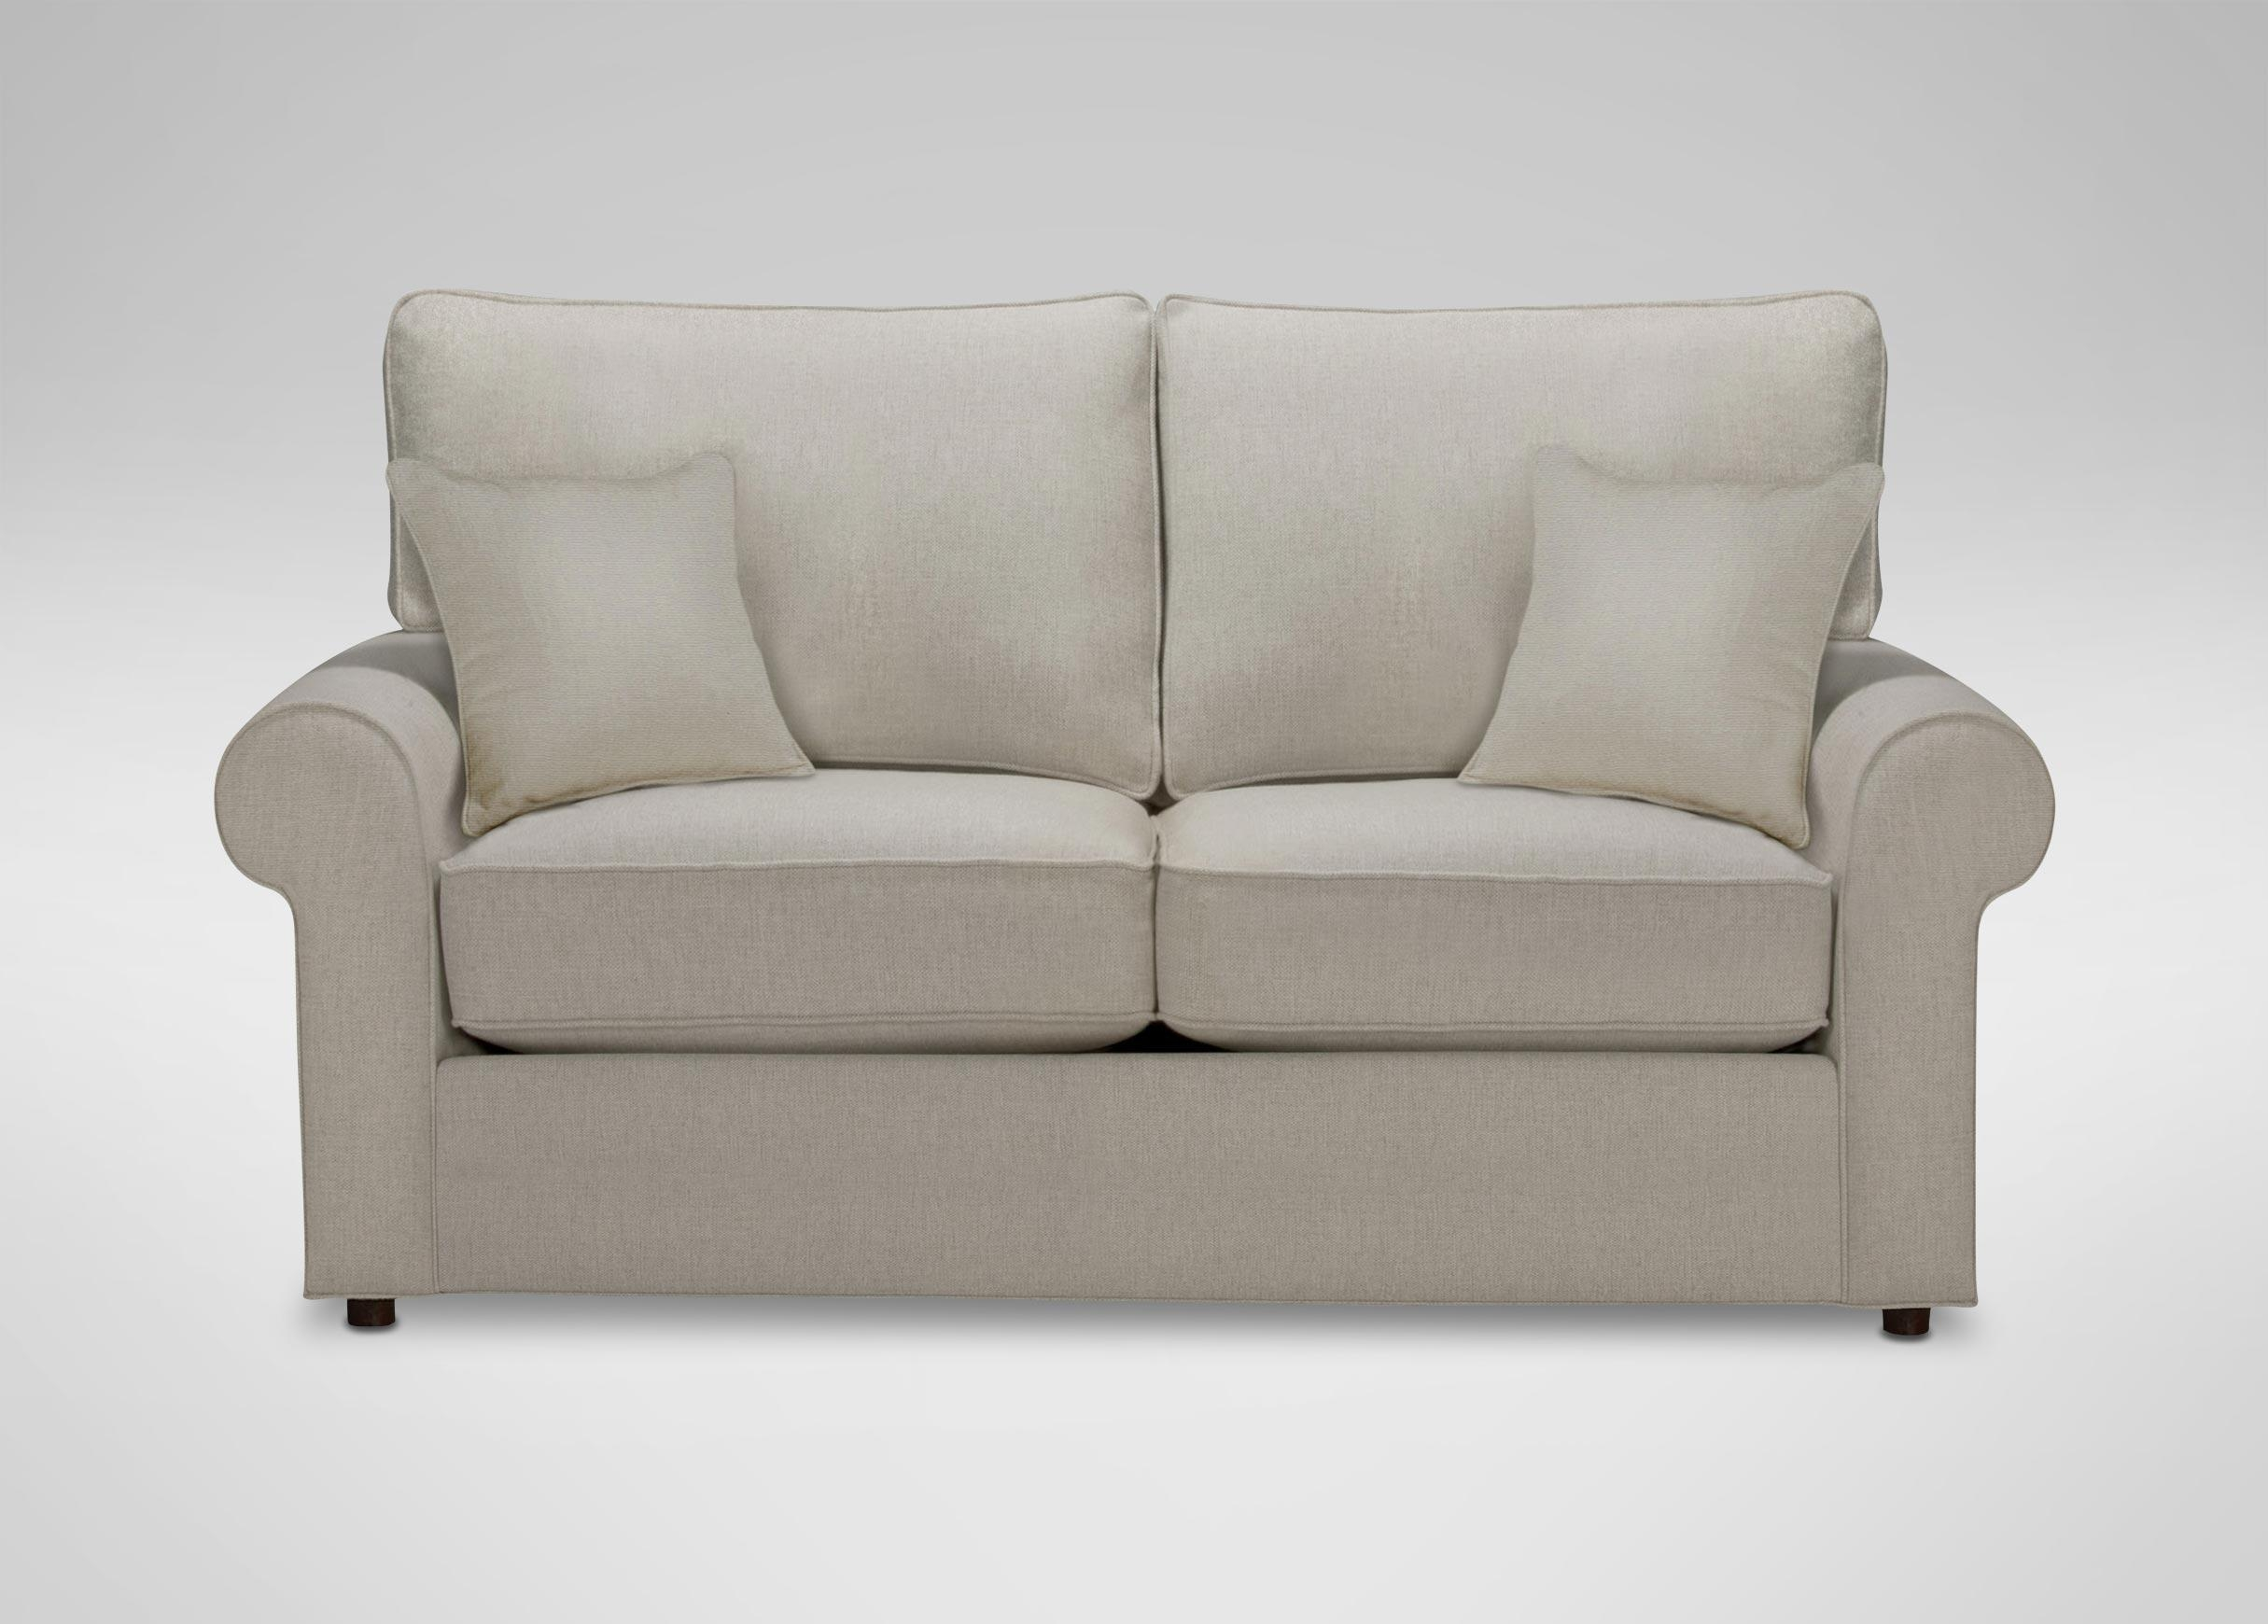 Retreat Roll Arm Sofa, Quick Ship | Sofas & Loveseats In 68 Inch Sofas (Image 12 of 20)